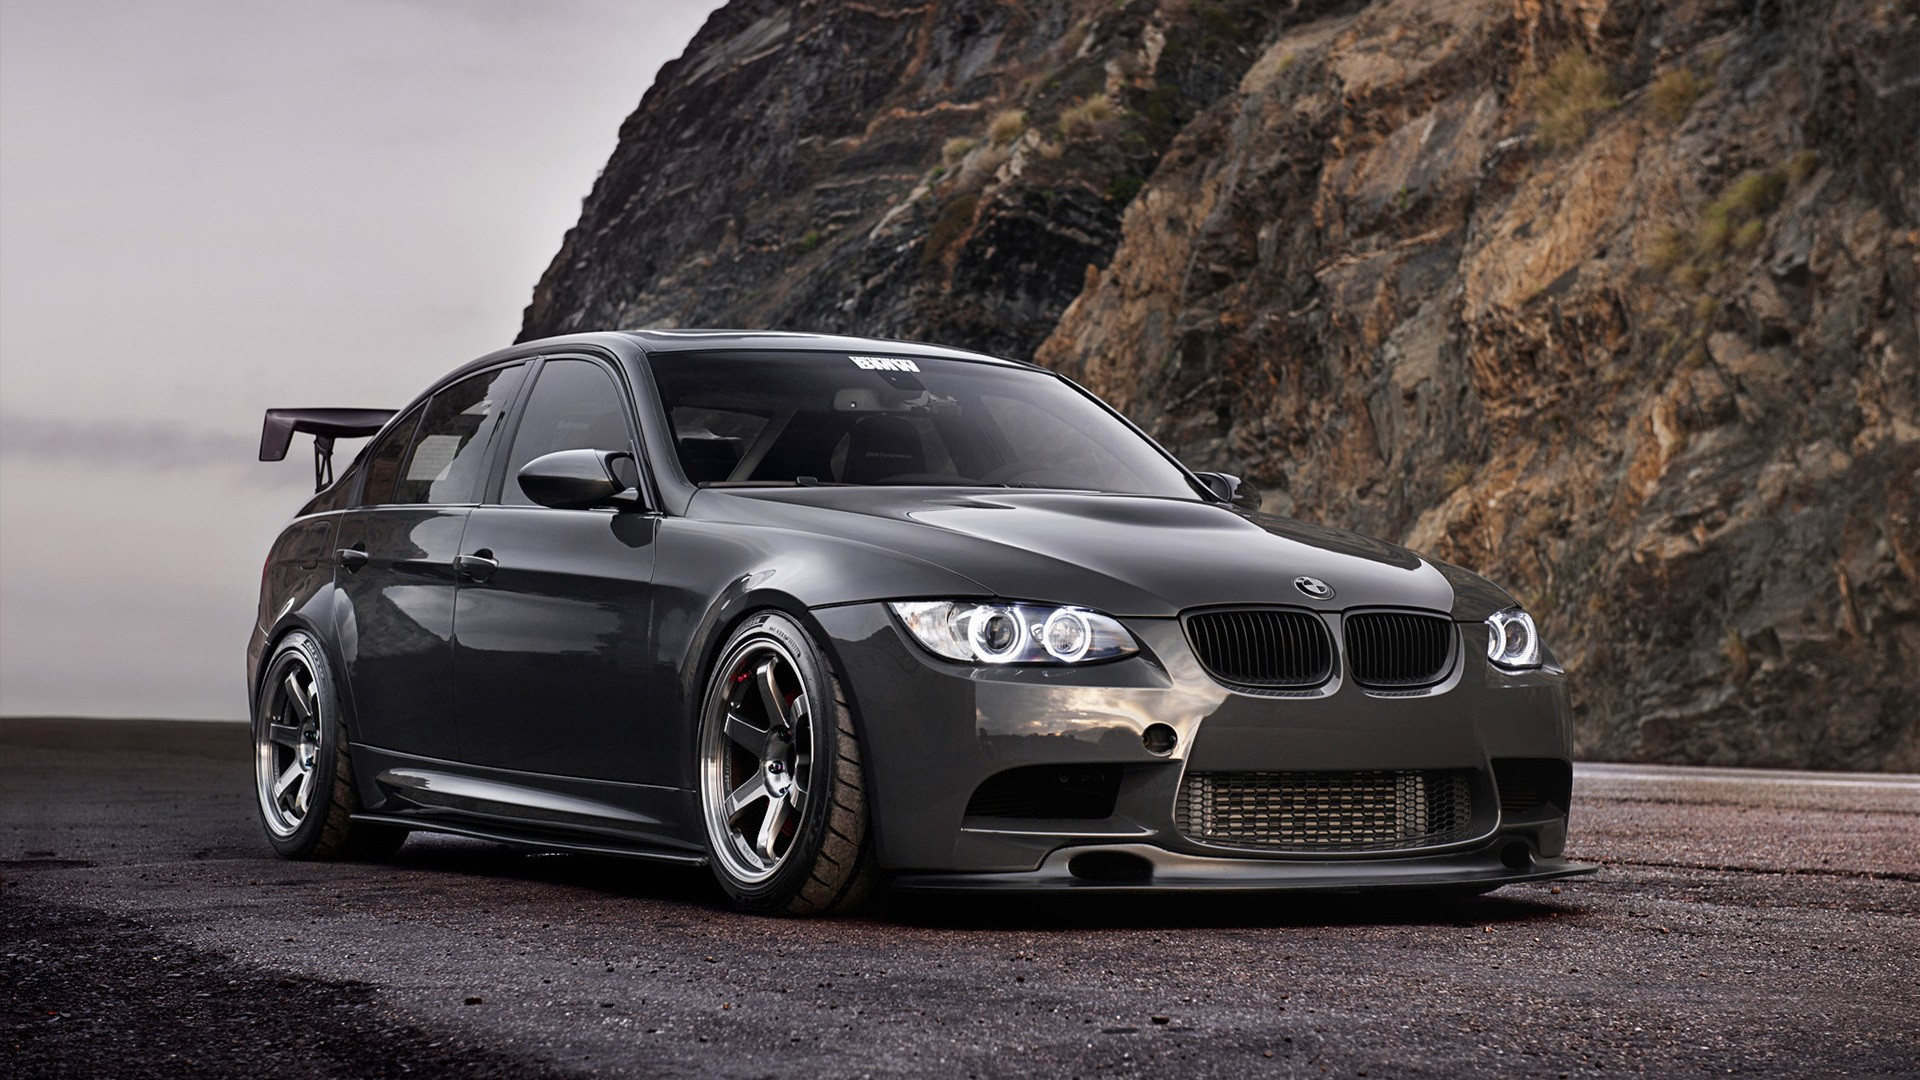 BMW M3 tuning, photos